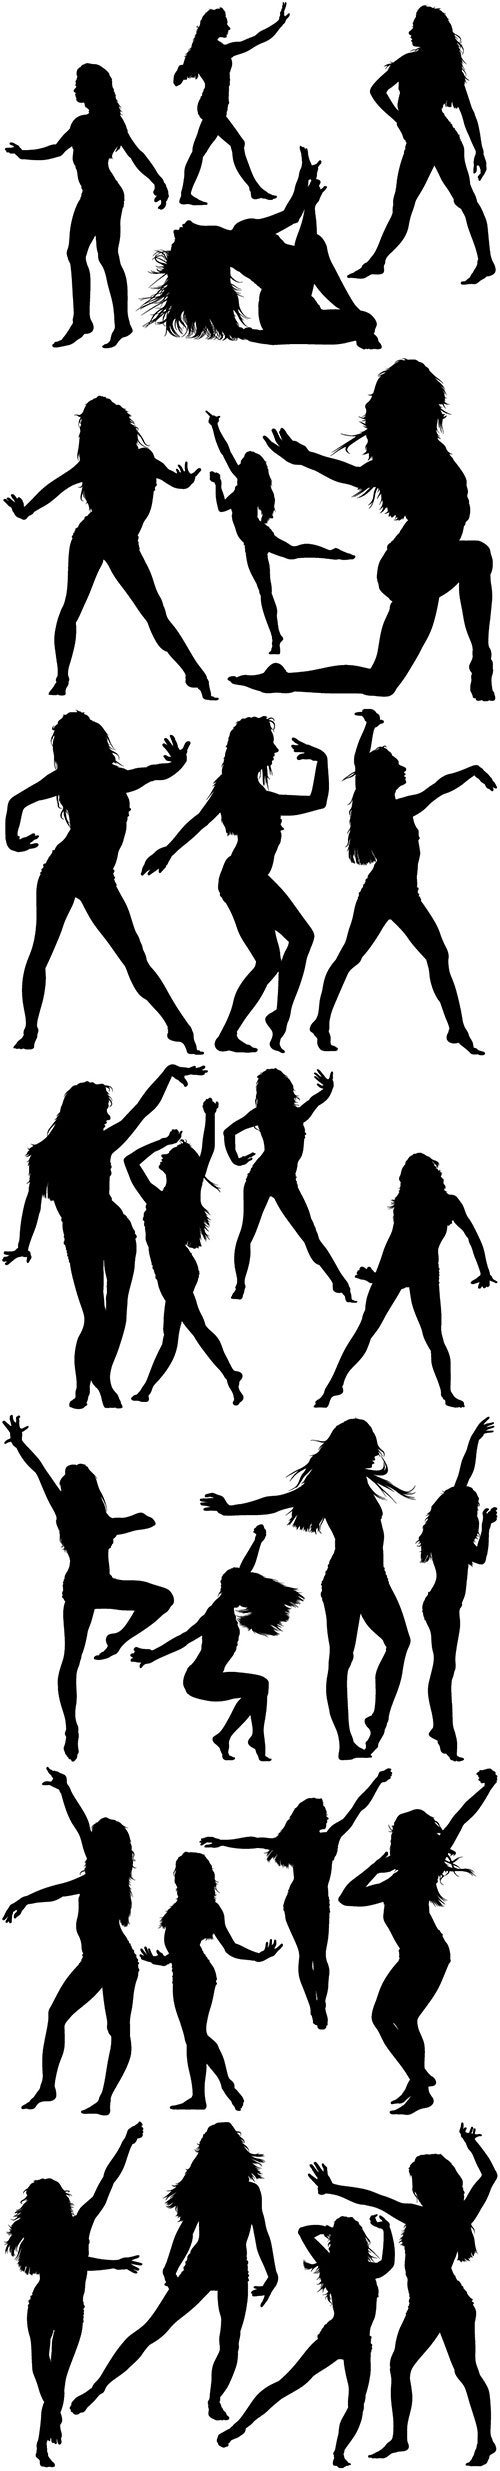 Silhouetted dancing young woman in various poses